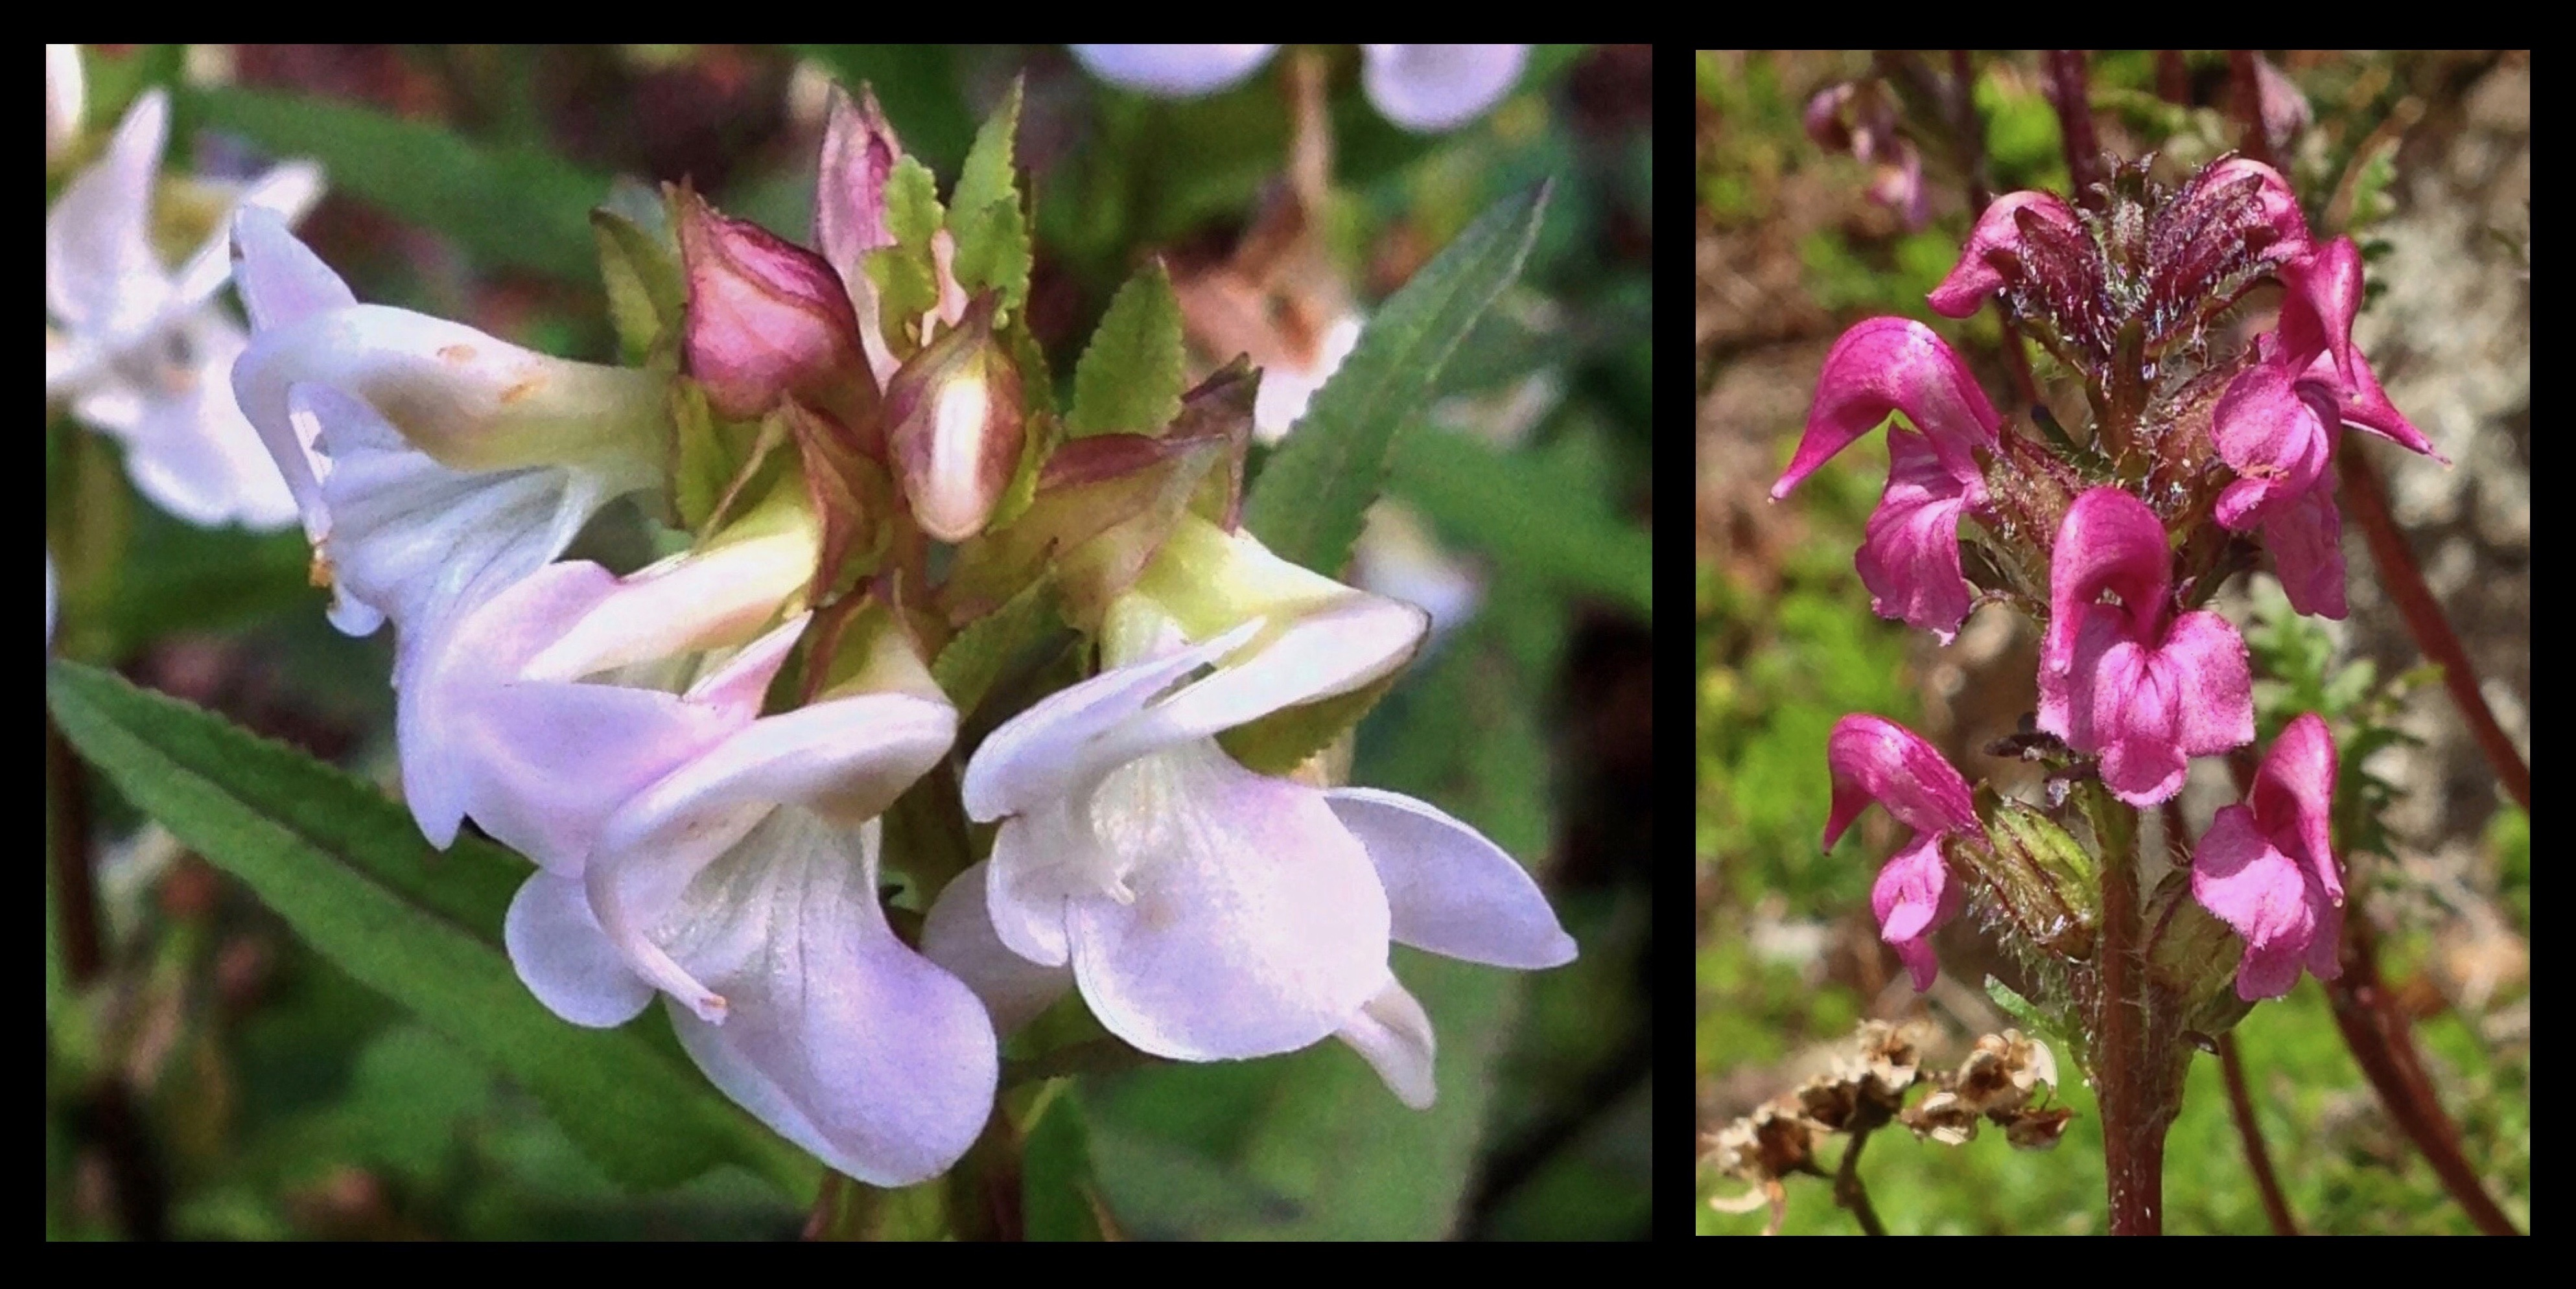 As if frozen in motion, delicately whorled blossoms of the sickletop lousewort (Pedicularis racemosa) (left) resemble a whirling ensemble of silk-draped dancers. Another distinctively formed lousewort, the bird's beak lousewort (P. ornithorhyncha) (right), rears spikes of blooms adorned with flamingo-like topknots. Louseworts are unfortunately named for the contradicting and equally false beliefs that they both attract and repel lice. Pacific Crest Trail, Section J, August 23, 2014.